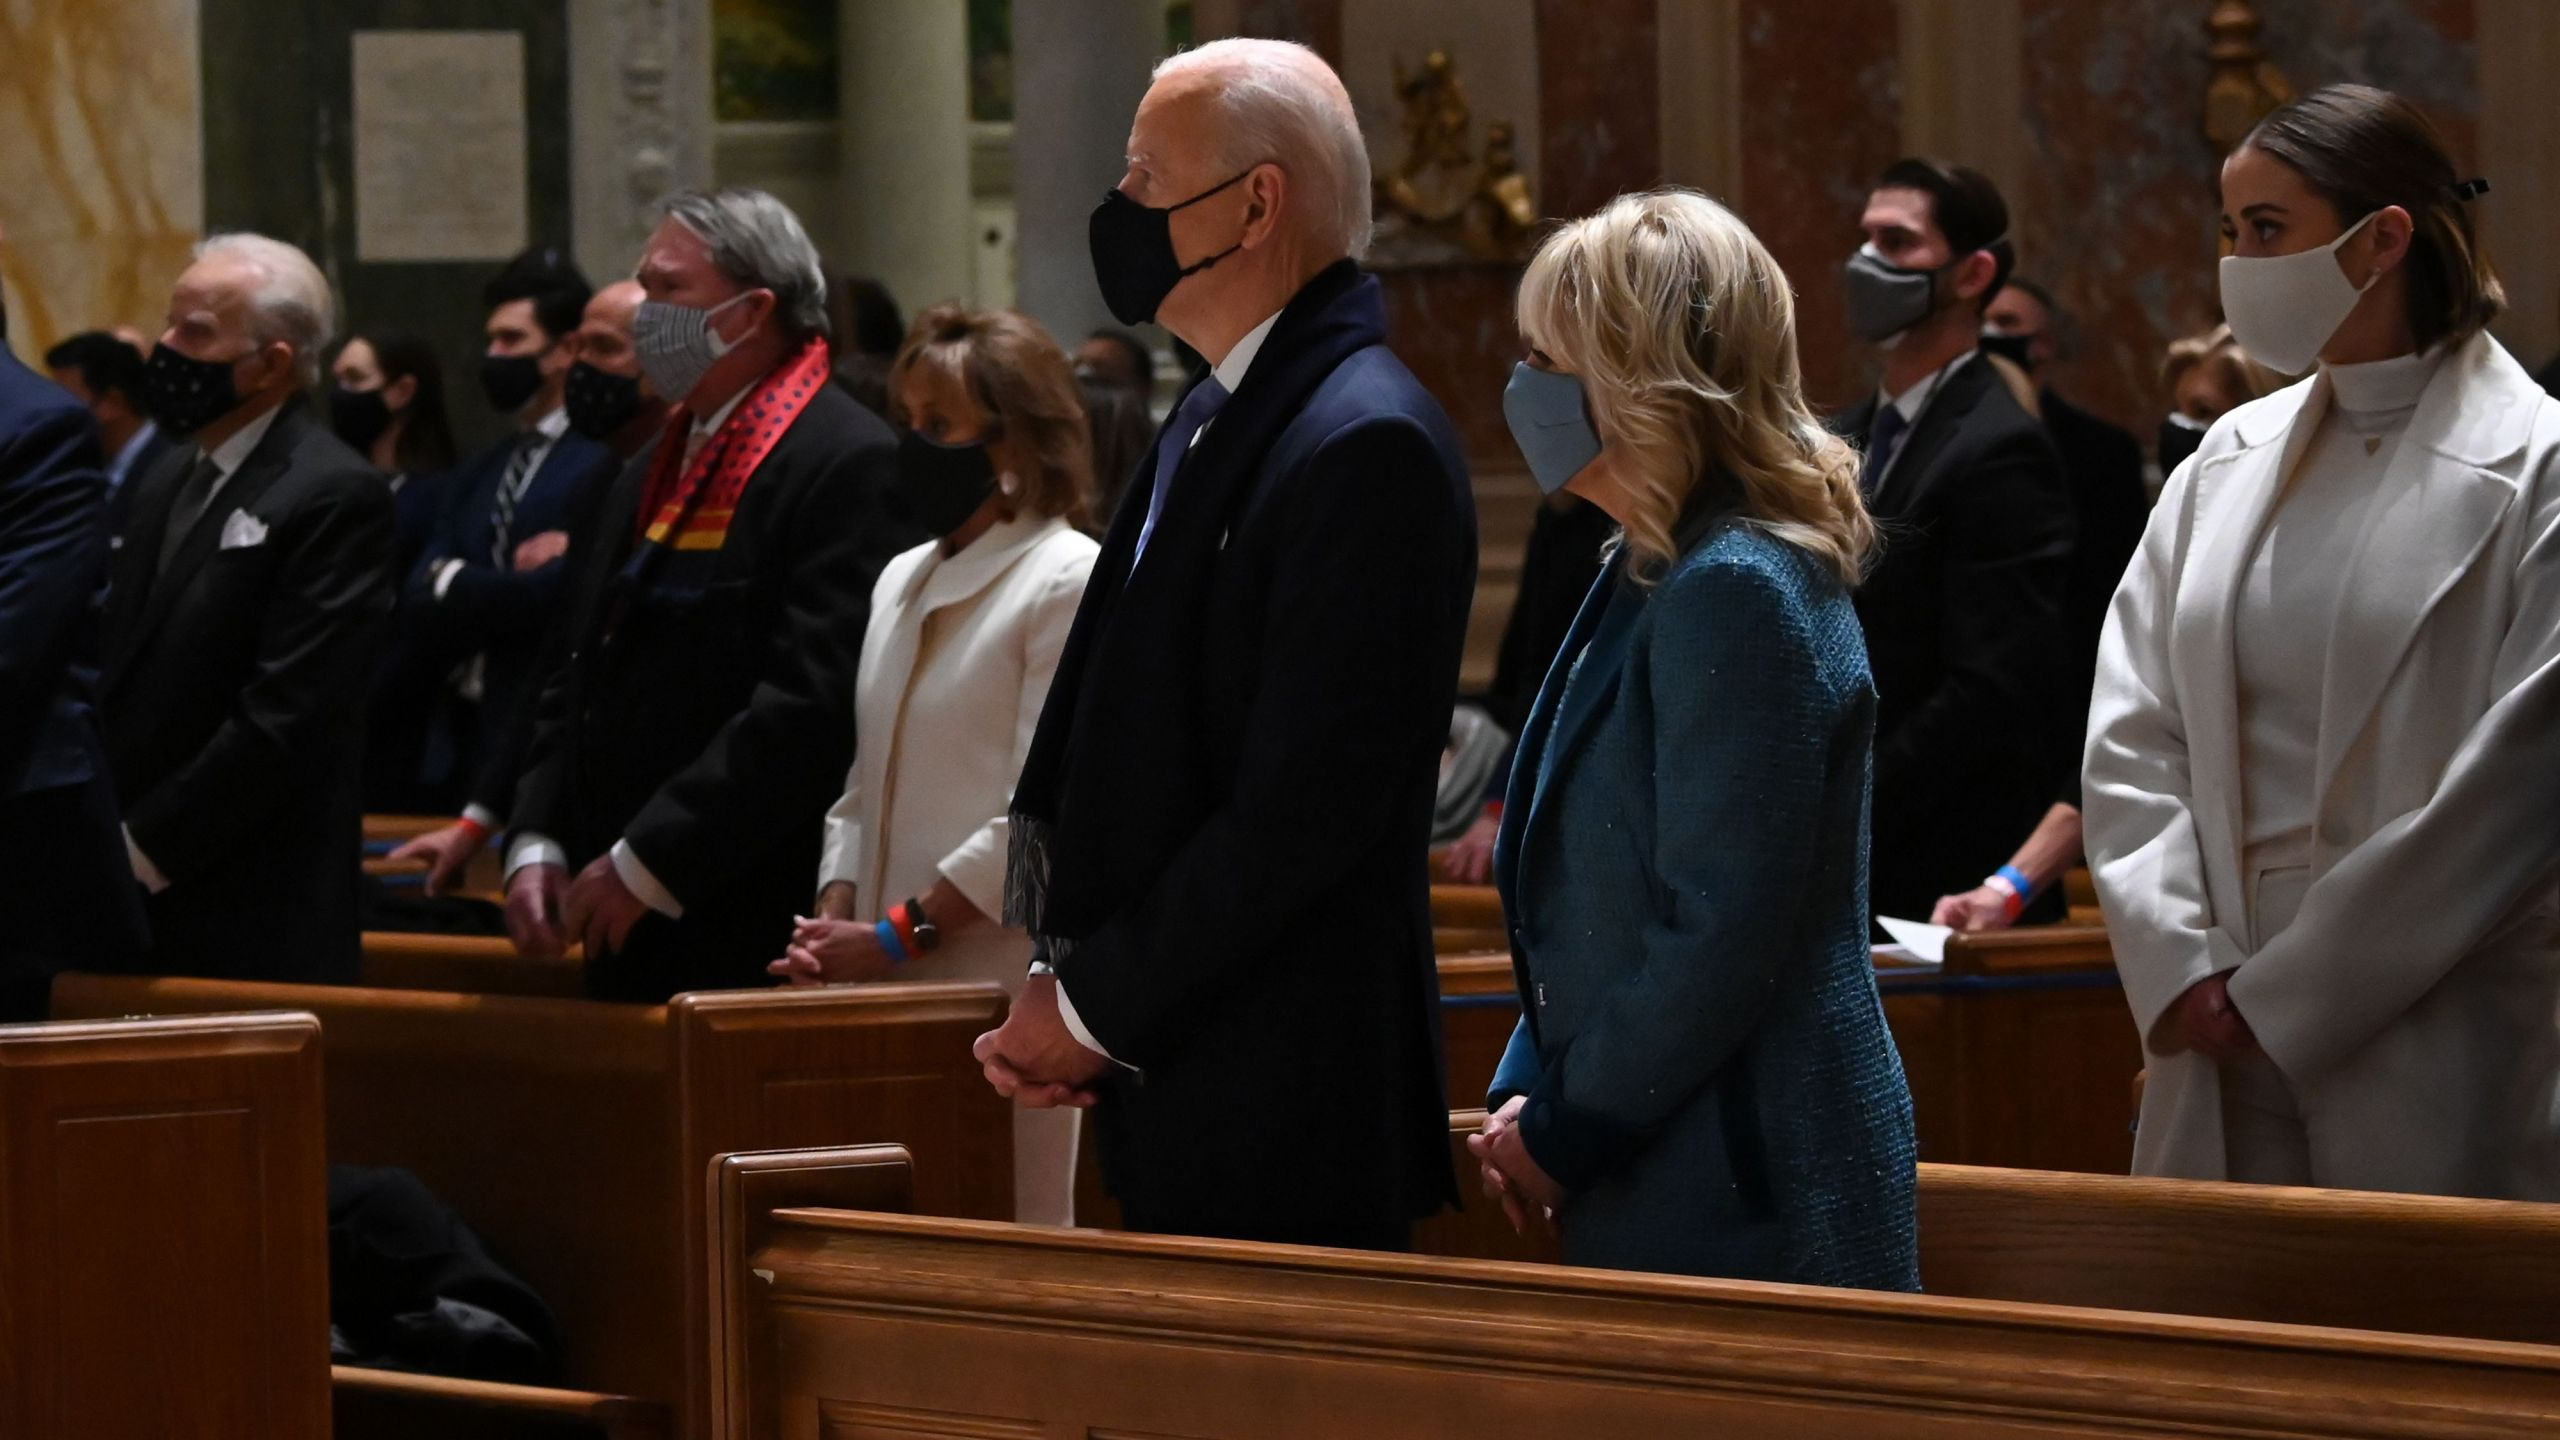 US President-elect Joe Biden (CL) and incoming First Lady Jill Biden attend Mass at the Cathedral of St. Matthew the Apostle in Washington, DC, on January 20, 2021. (JIM WATSON/AFP via Getty Images)